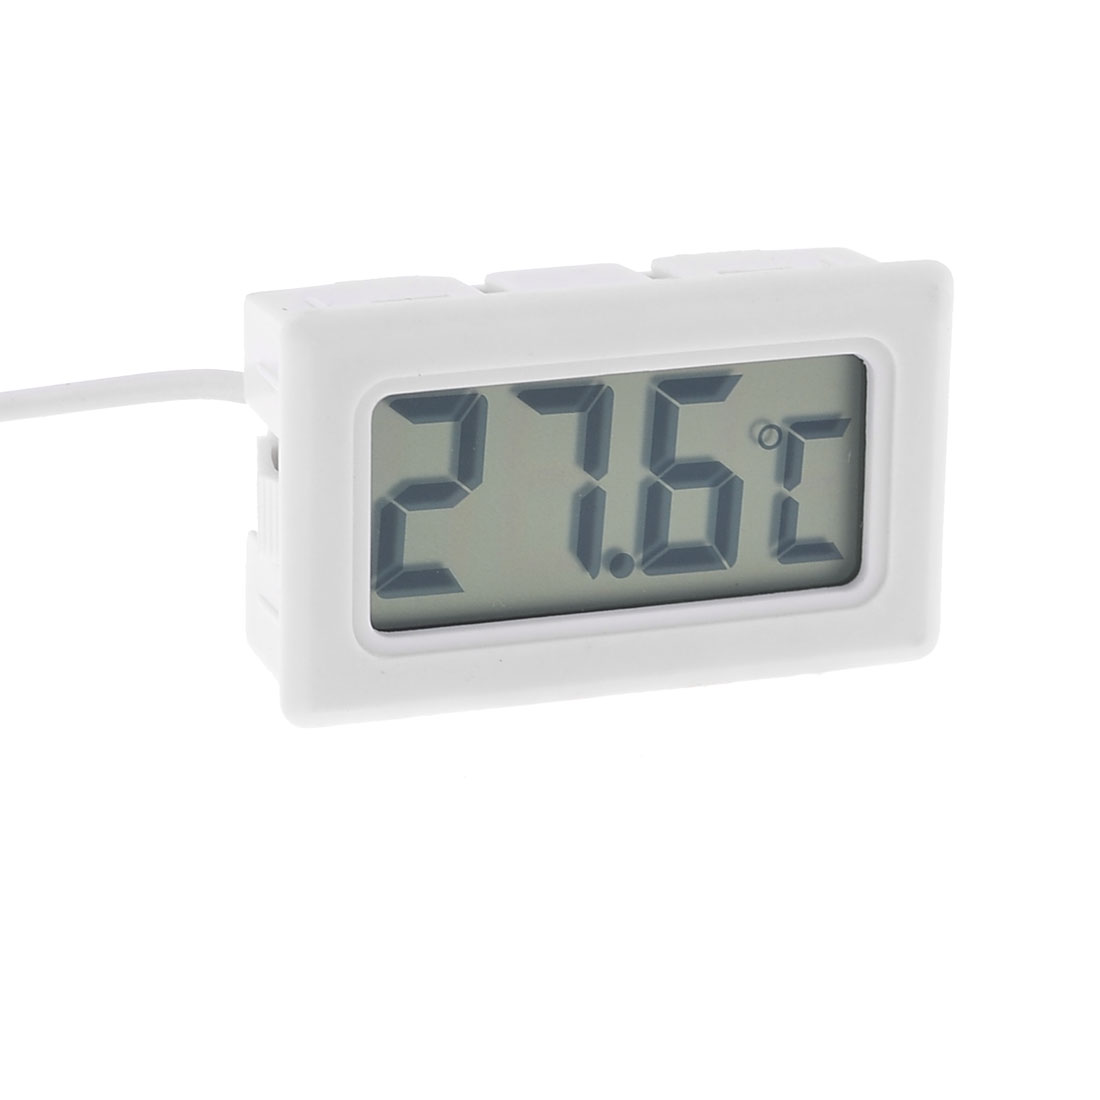 Termperature Probe LCD Display Digital Thermometer White w 3.3Ft Long Cable